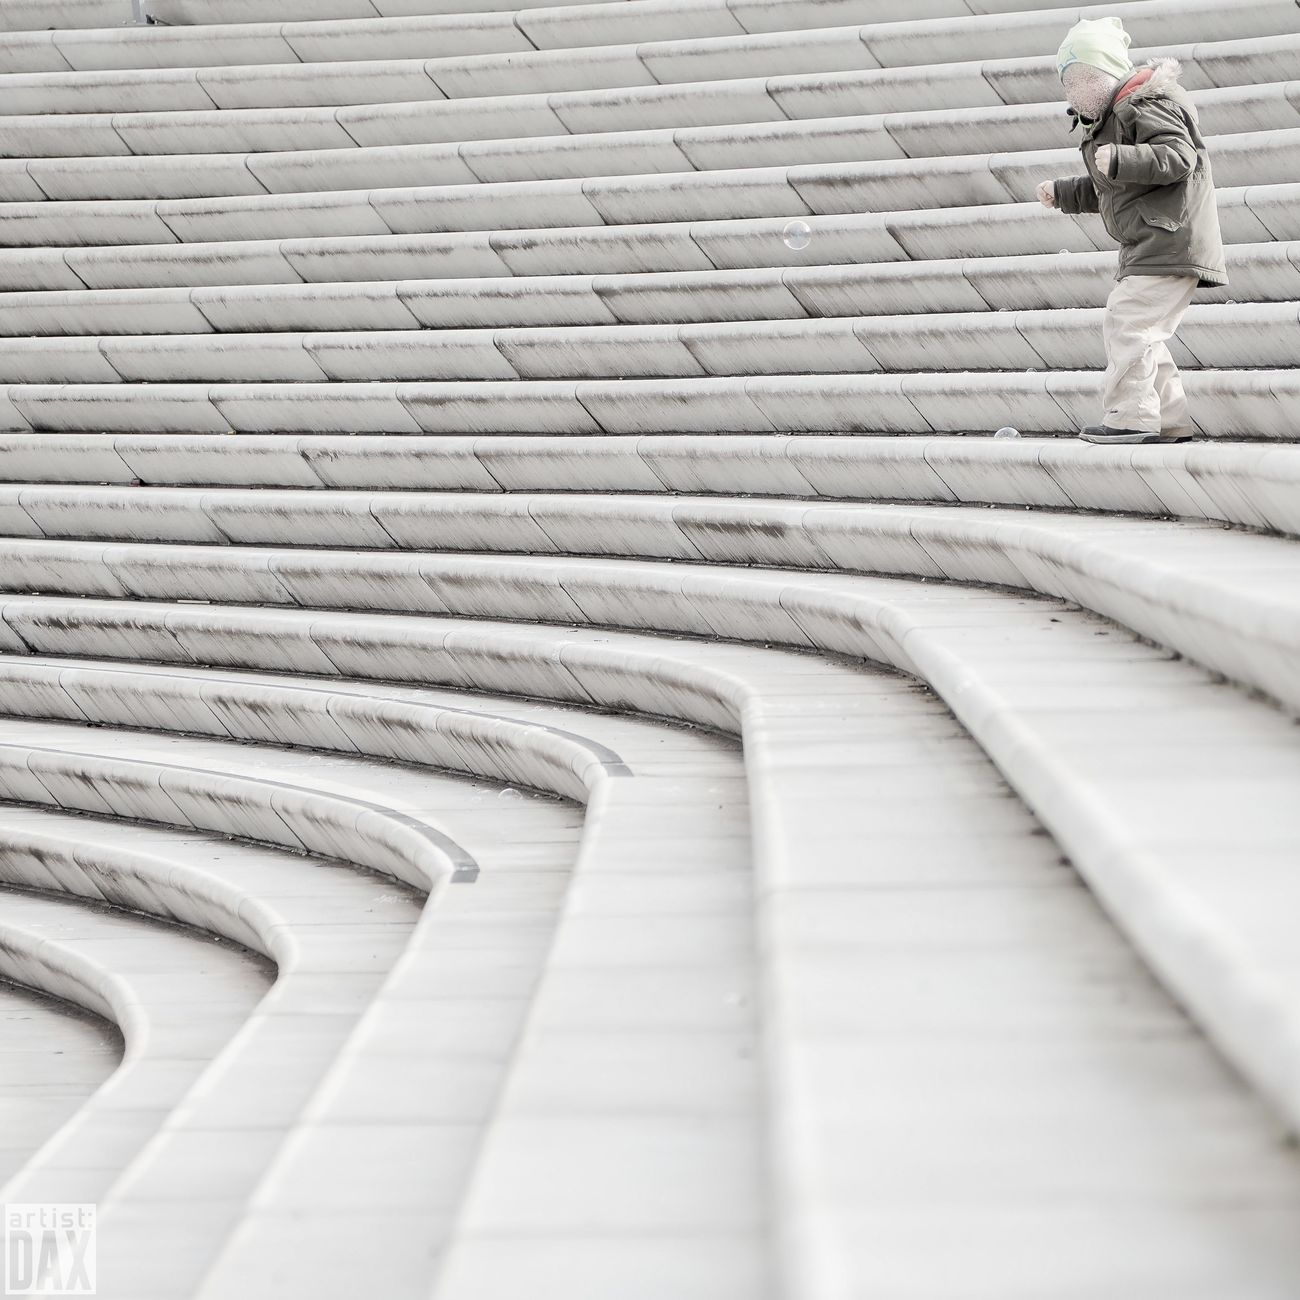 Bubble fun artist:DAX PHOTOGRAPHOHOLIC I born to capture | Steps Steps And Staircases Staircase Architecture Outdoors Built Structure Day Abstractarchitecture Simple Elegance Minimalism Photography Germany 🇩🇪 Deutschland Hamburg Elbpromenade ArtistDAX EyeEm Gallery EyeEm Best Shots - Architecture Childsplay Children Playing